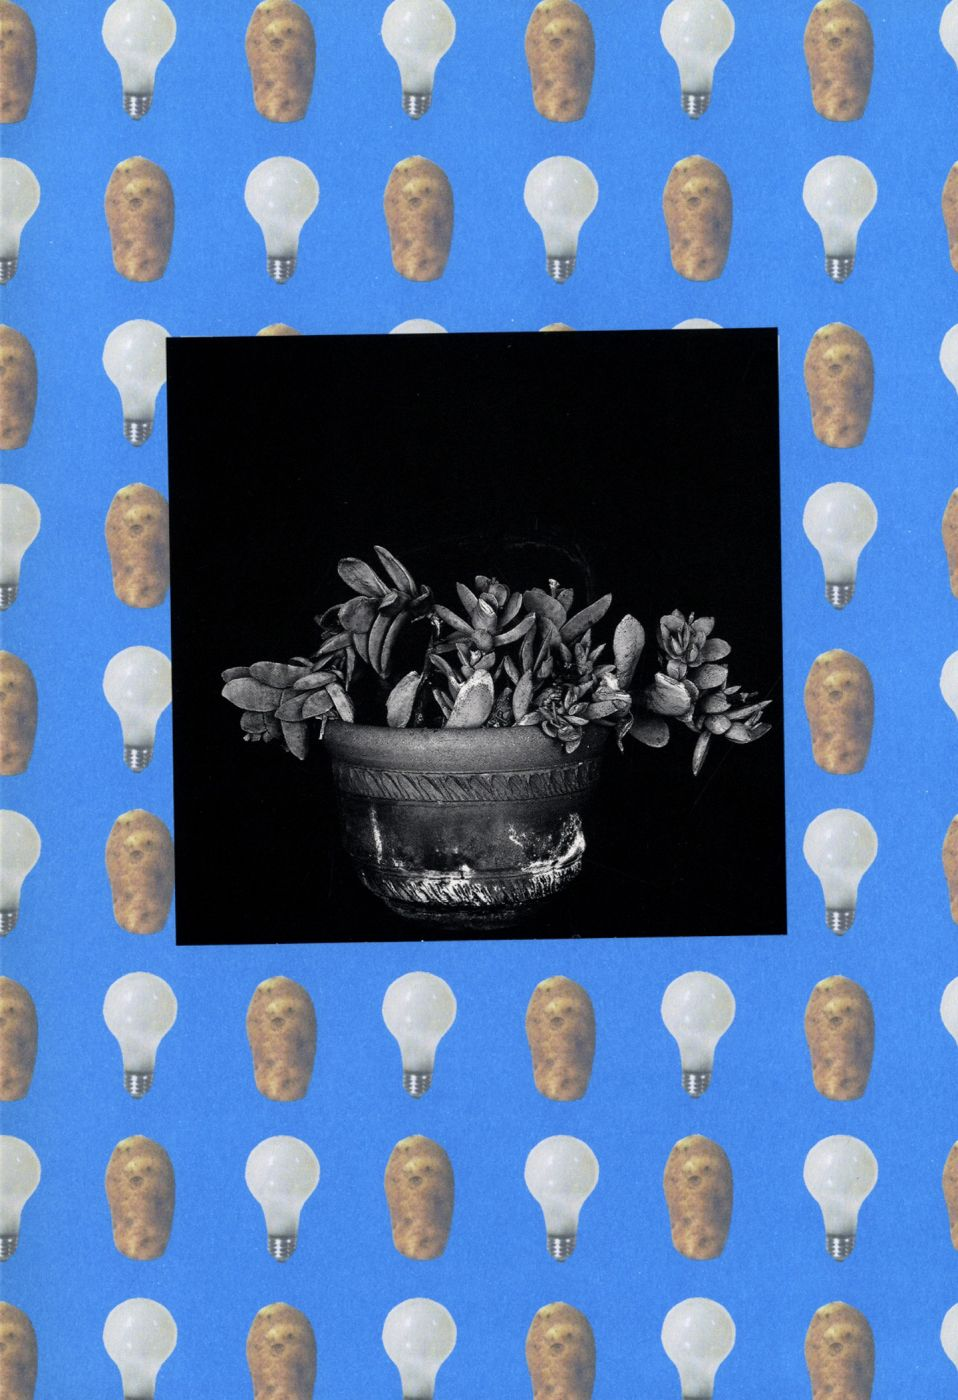 John Baldessari: RMS W VU: Wallpaper, Lamps, and Plants. (New)